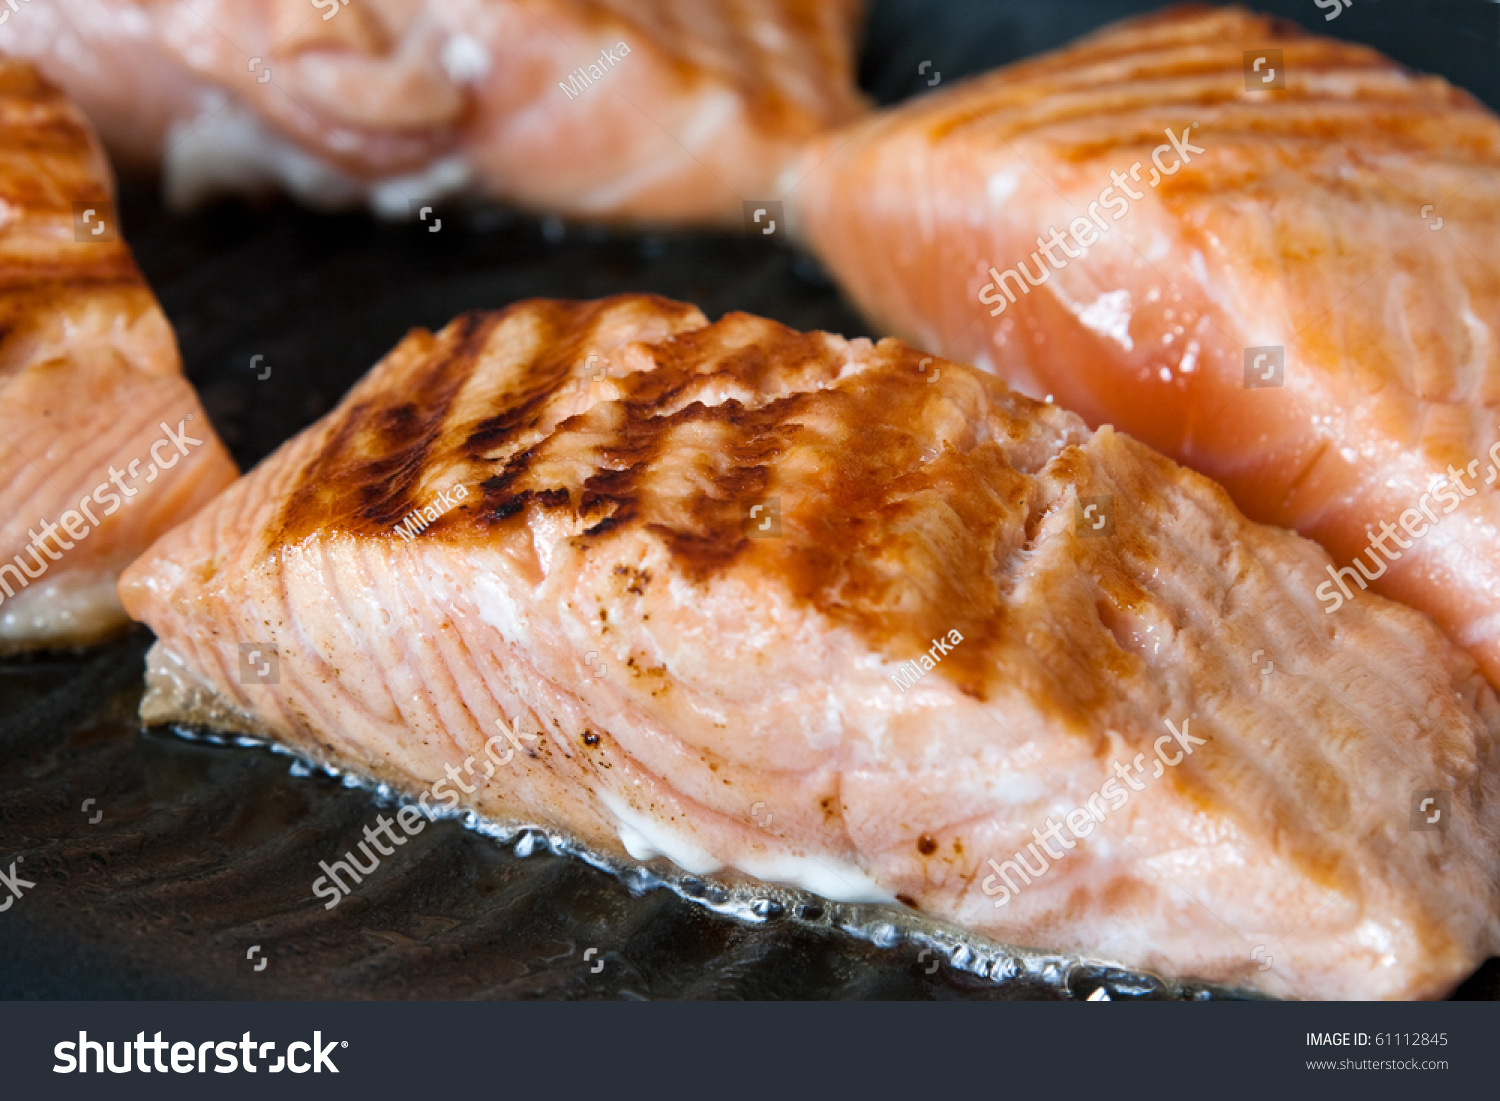 Cooking Salmon Steak On Grill Pan Preview Save To A Lightbox Cooking Salmon  Steak On Grill